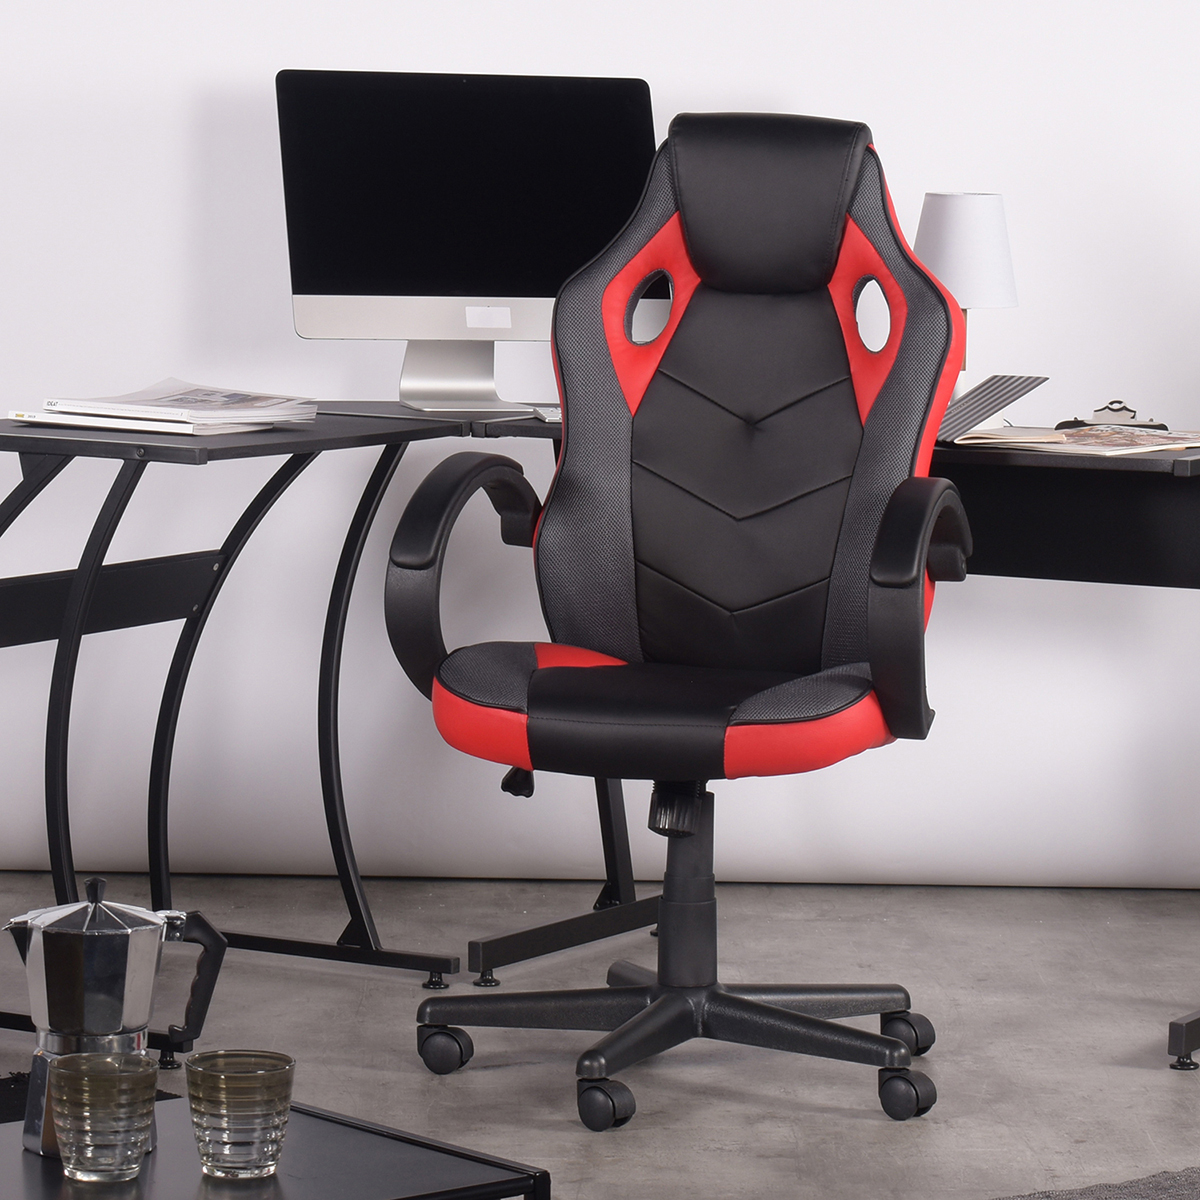 thumbnail 30 - Gaming Racing Chair Office High Back Ergonomic Computer Desk Swivel PU Leather